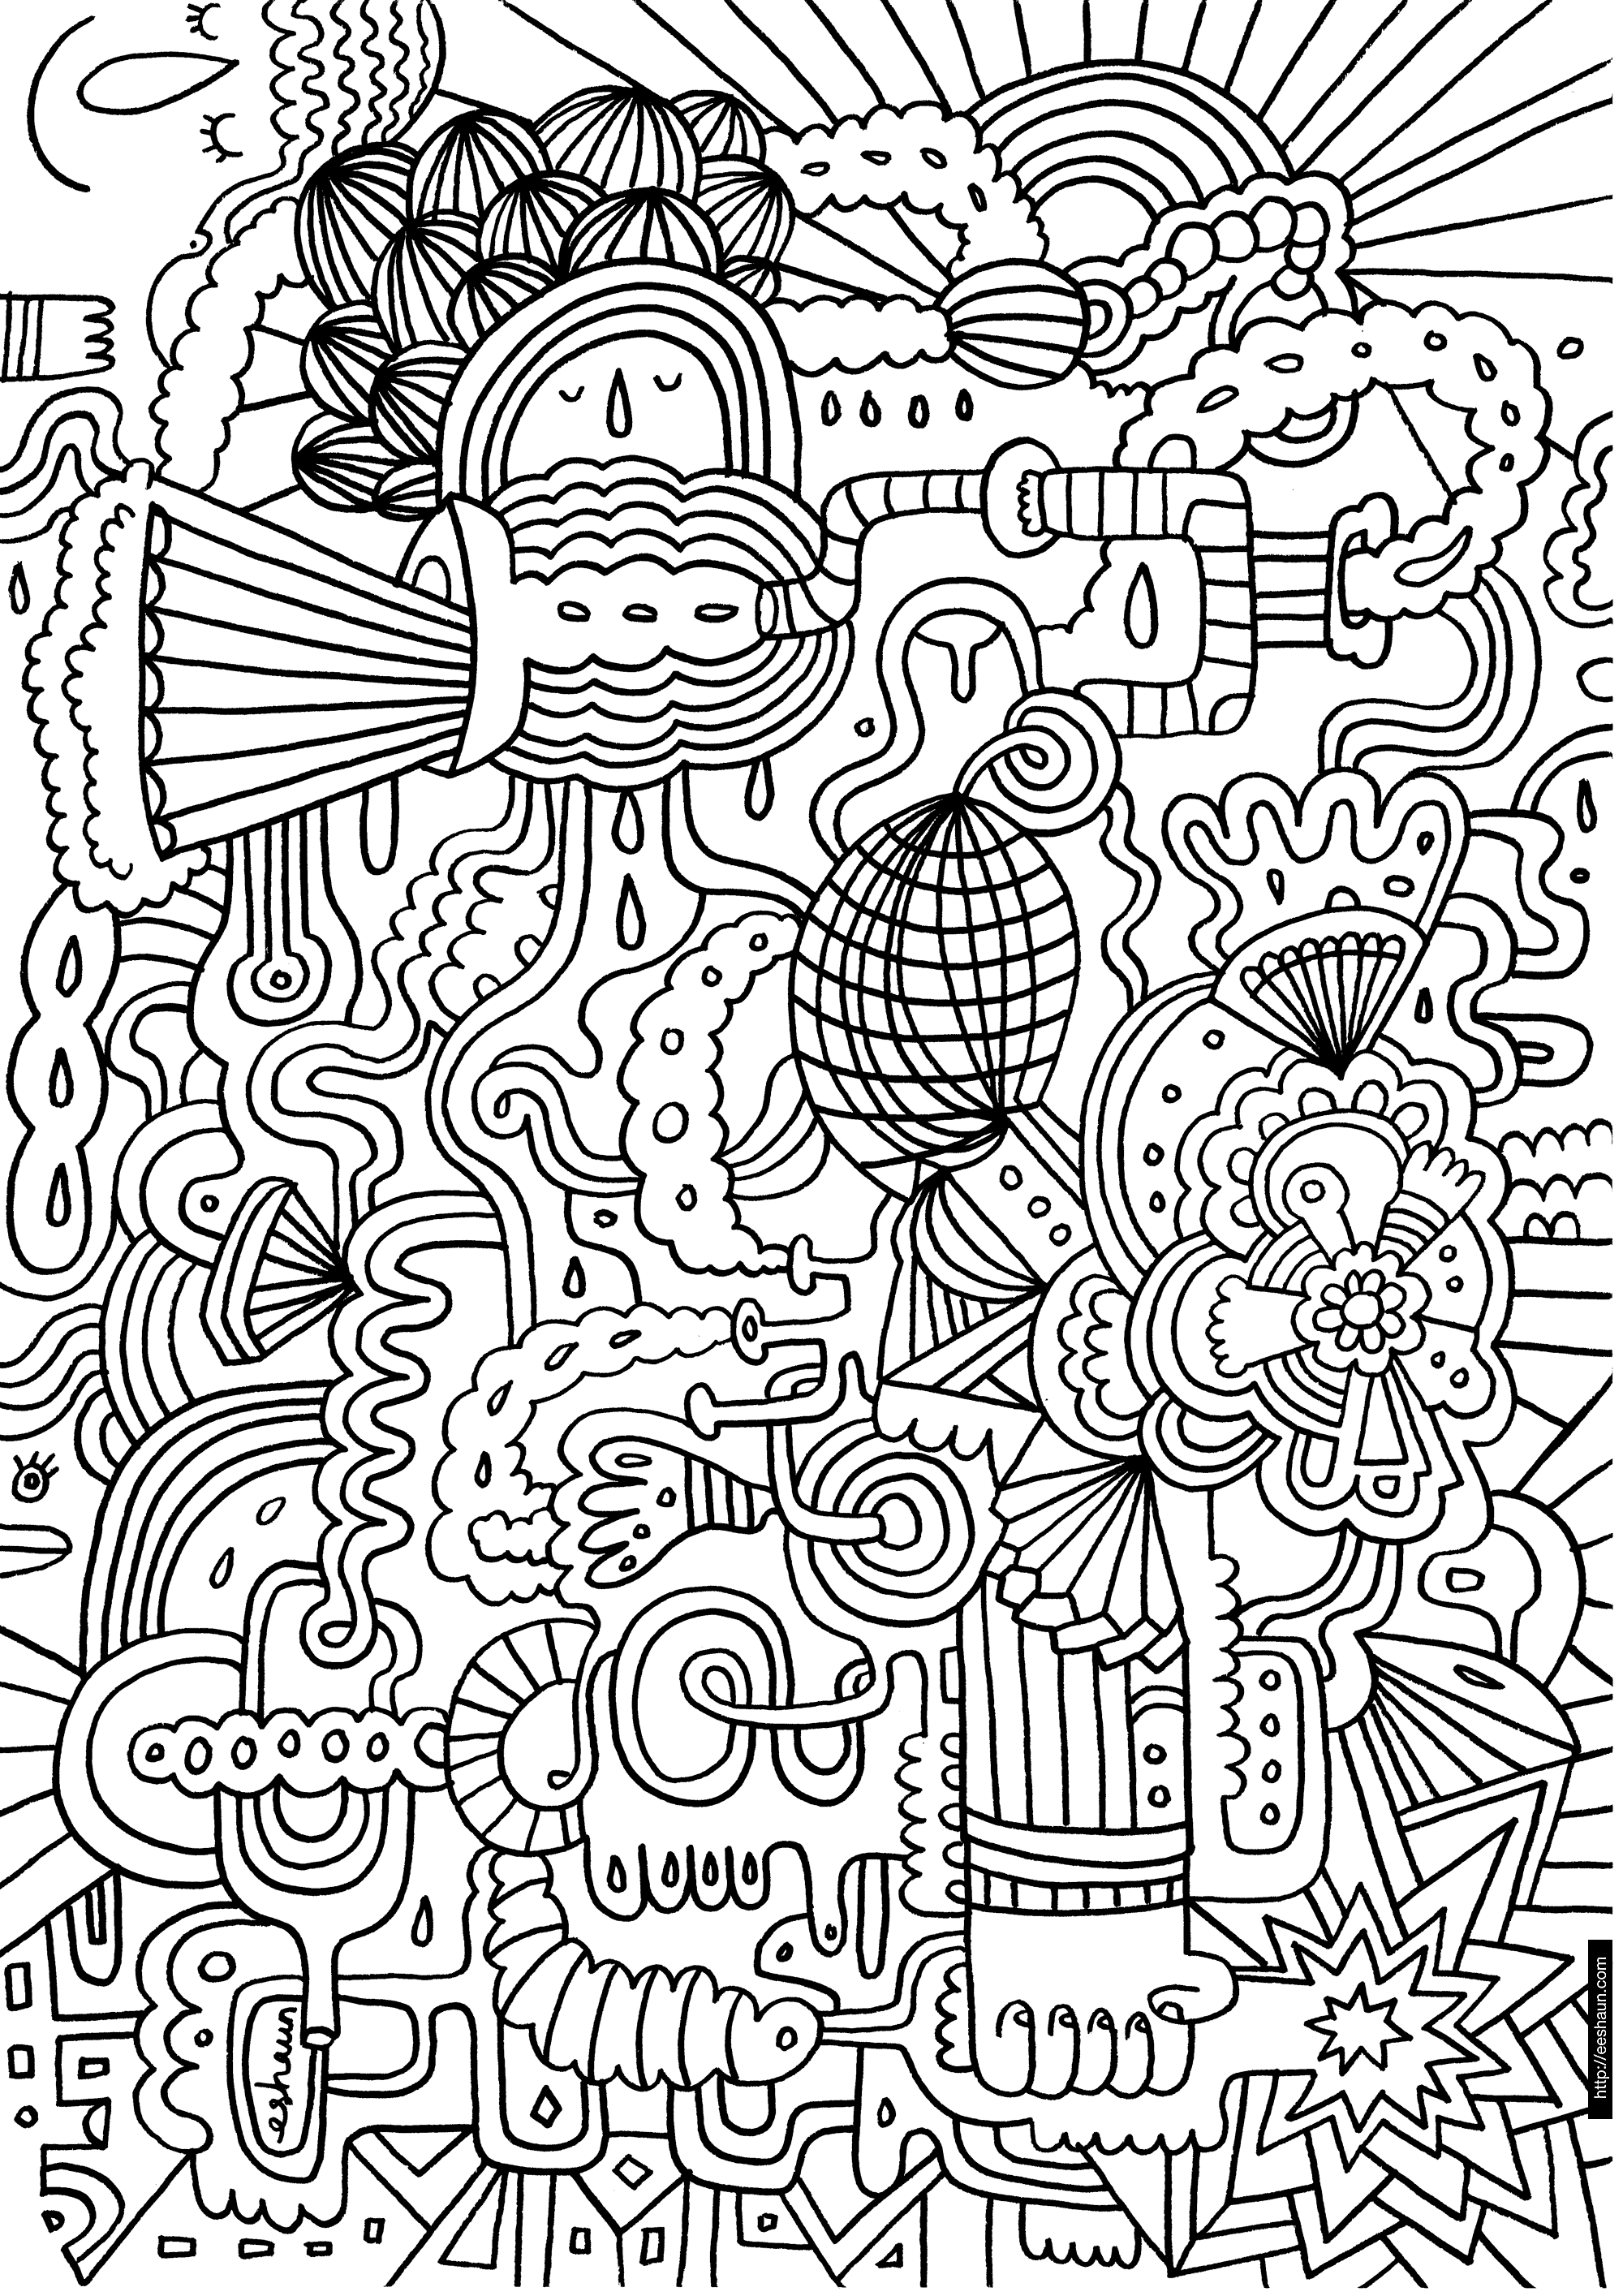 patterned coloring pages pattern animal coloring pages download and print for free patterned coloring pages